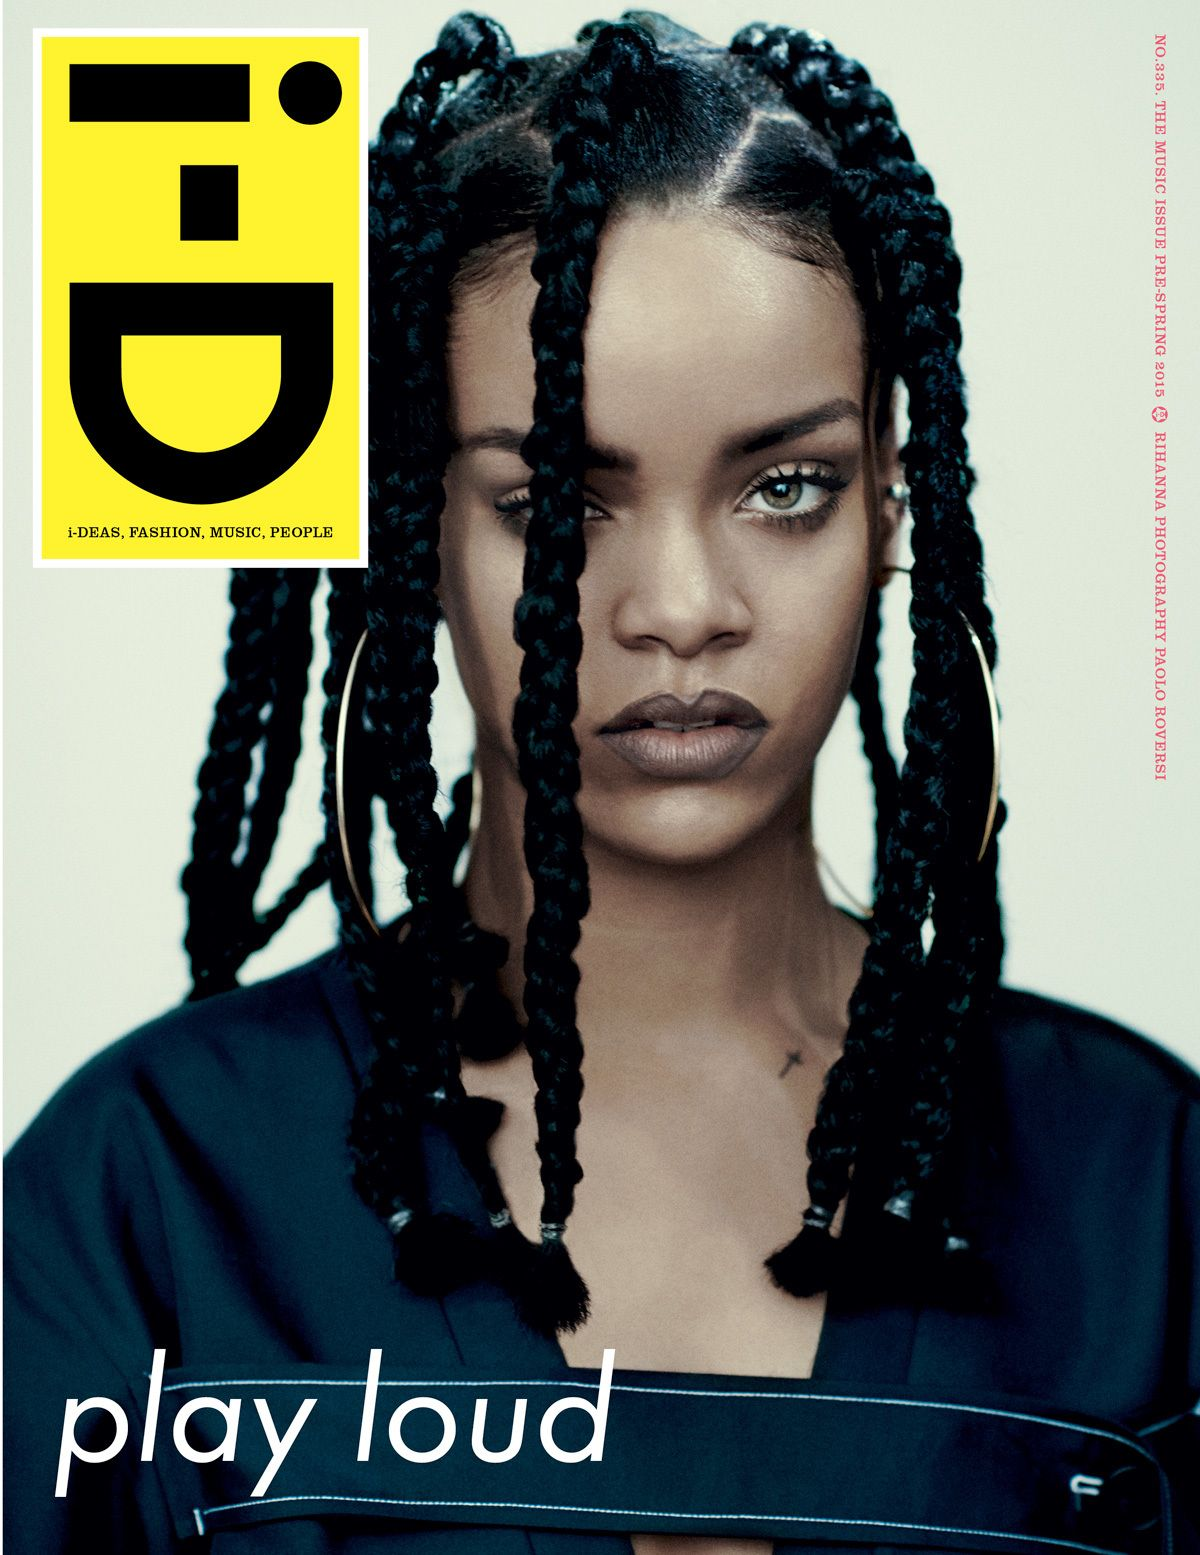 rihanna-is-the-cover-star-of-the-music-issue-body-image-1422374585.jpg